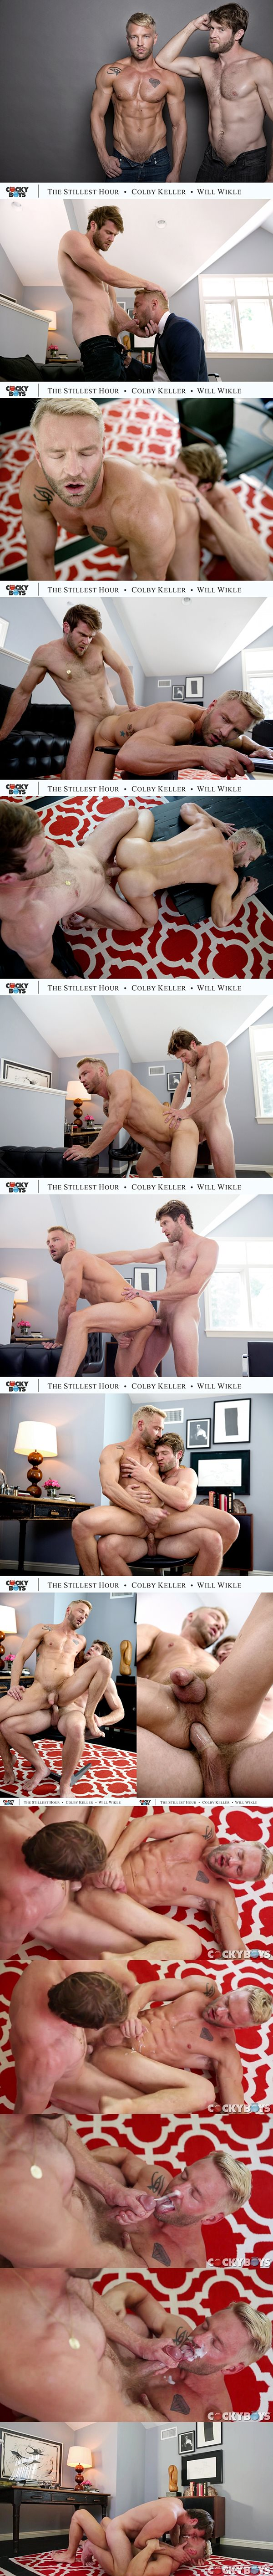 Colby Keller fucks former reality star Will Wikle's tight virgin ass in The Stillest Hour Part Two at Cockyboys 02